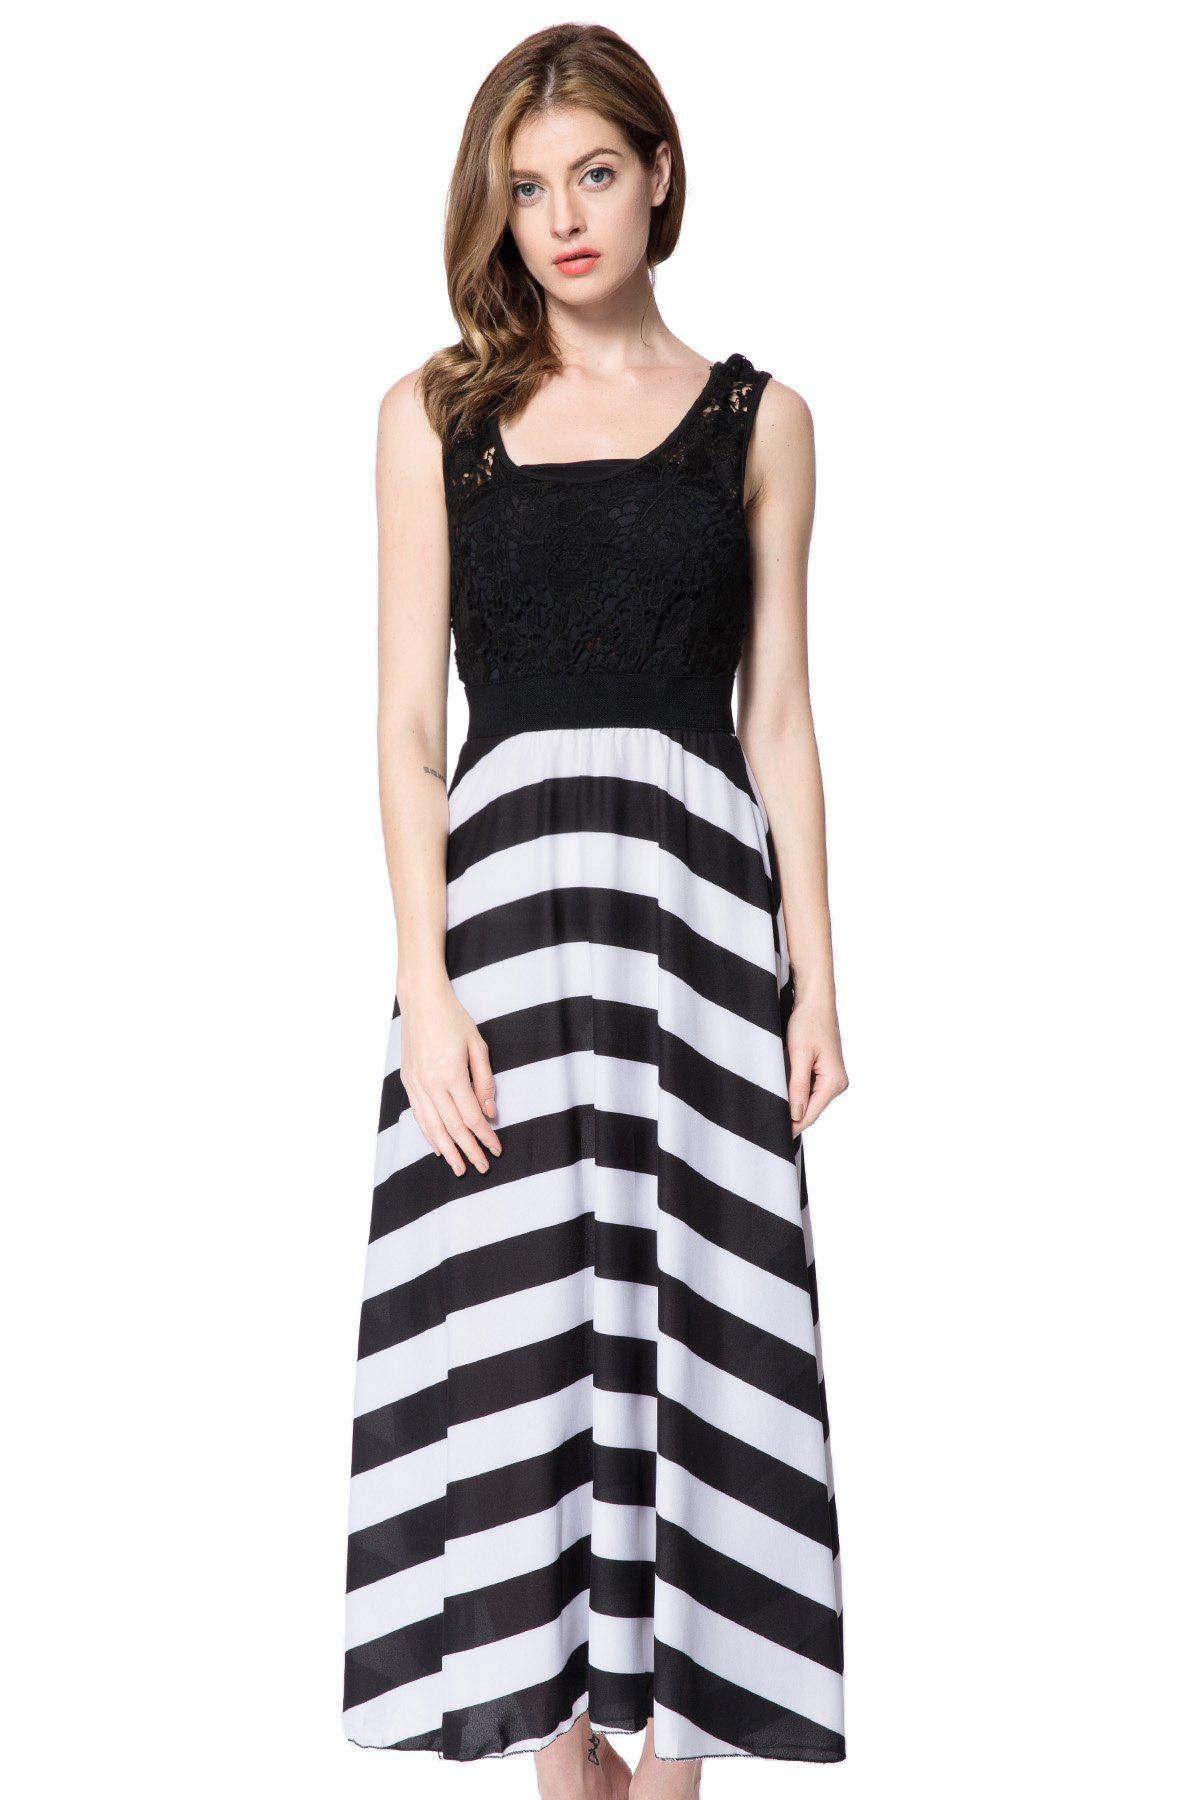 Lace Embellished Hollow Out Design Sleeveless Scoop Neck Striped DressWomen<br><br><br>Size: L<br>Color: WHITE AND BLACK